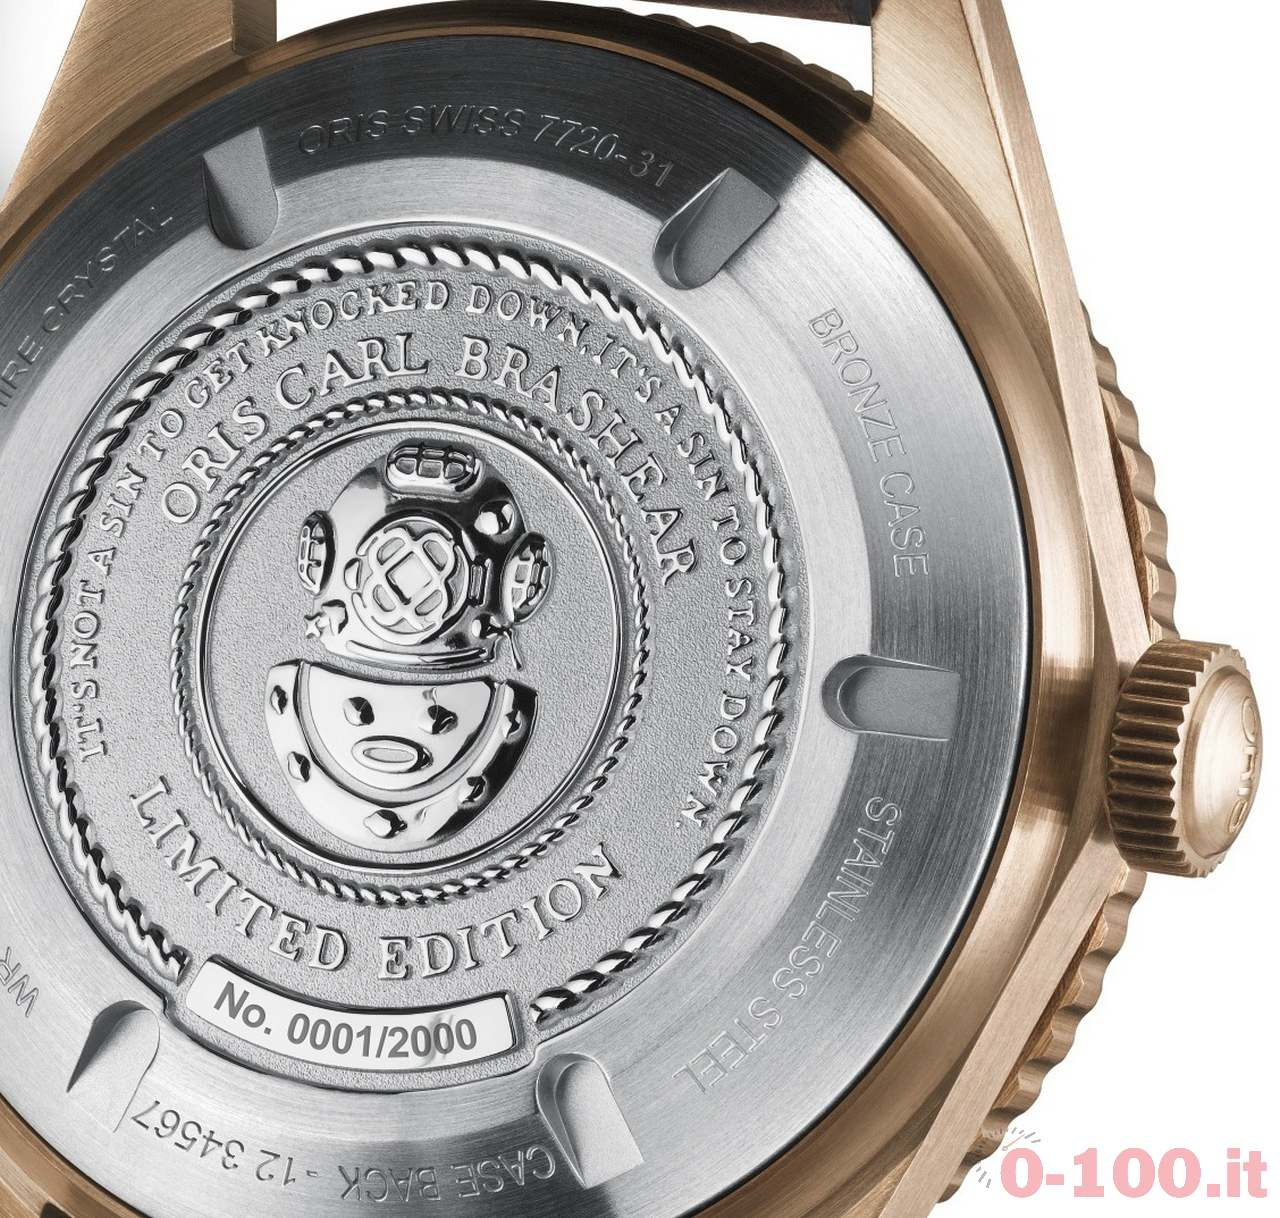 01 733 7720 3185-Set LS - Oris Carl Brashear Limited Edition_HighRes_4779